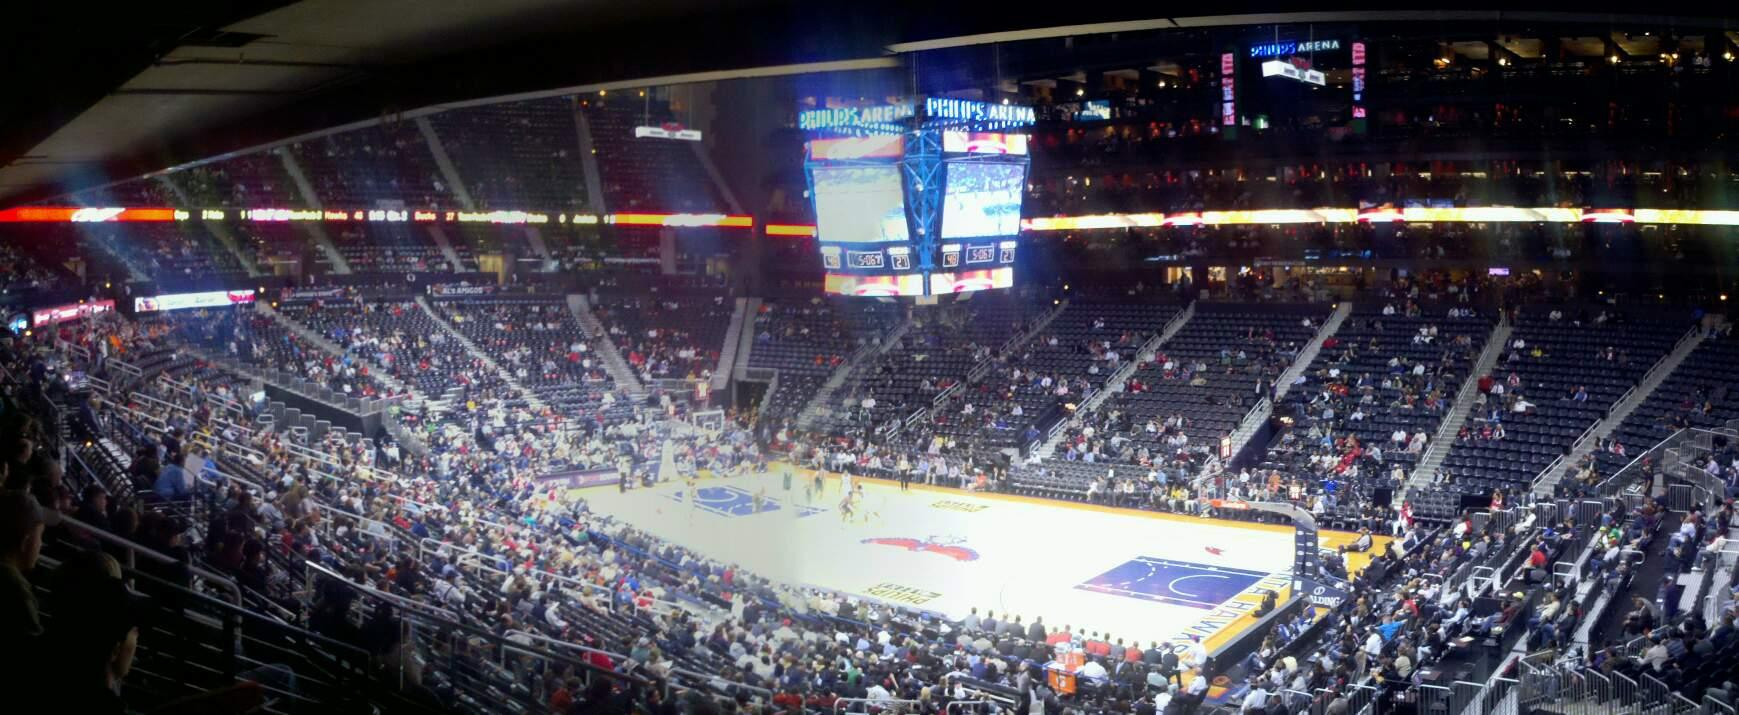 State Farm Arena Section T19 Row g Seat 2